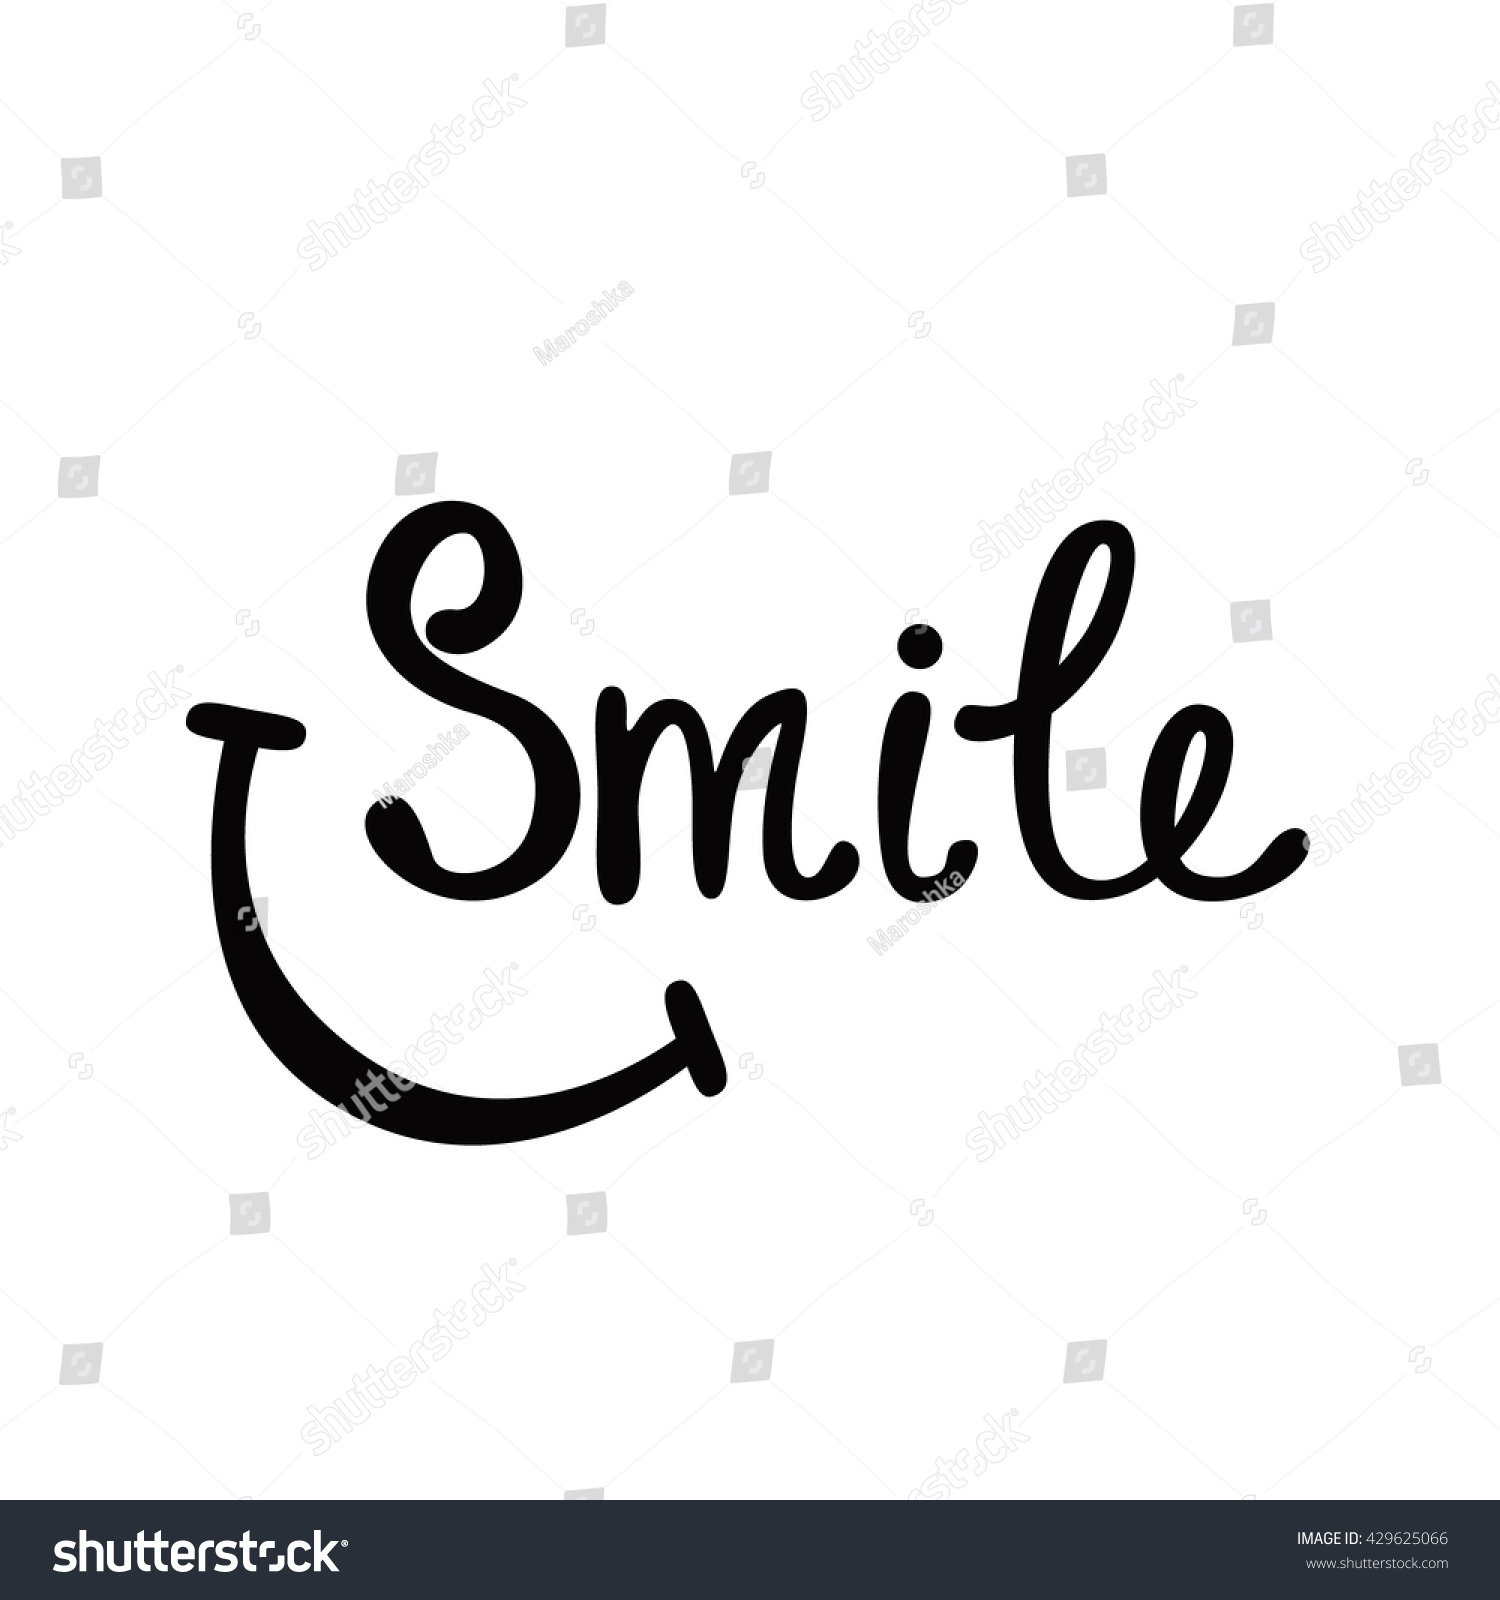 Smile inspirational quote about happy modern calligraphy